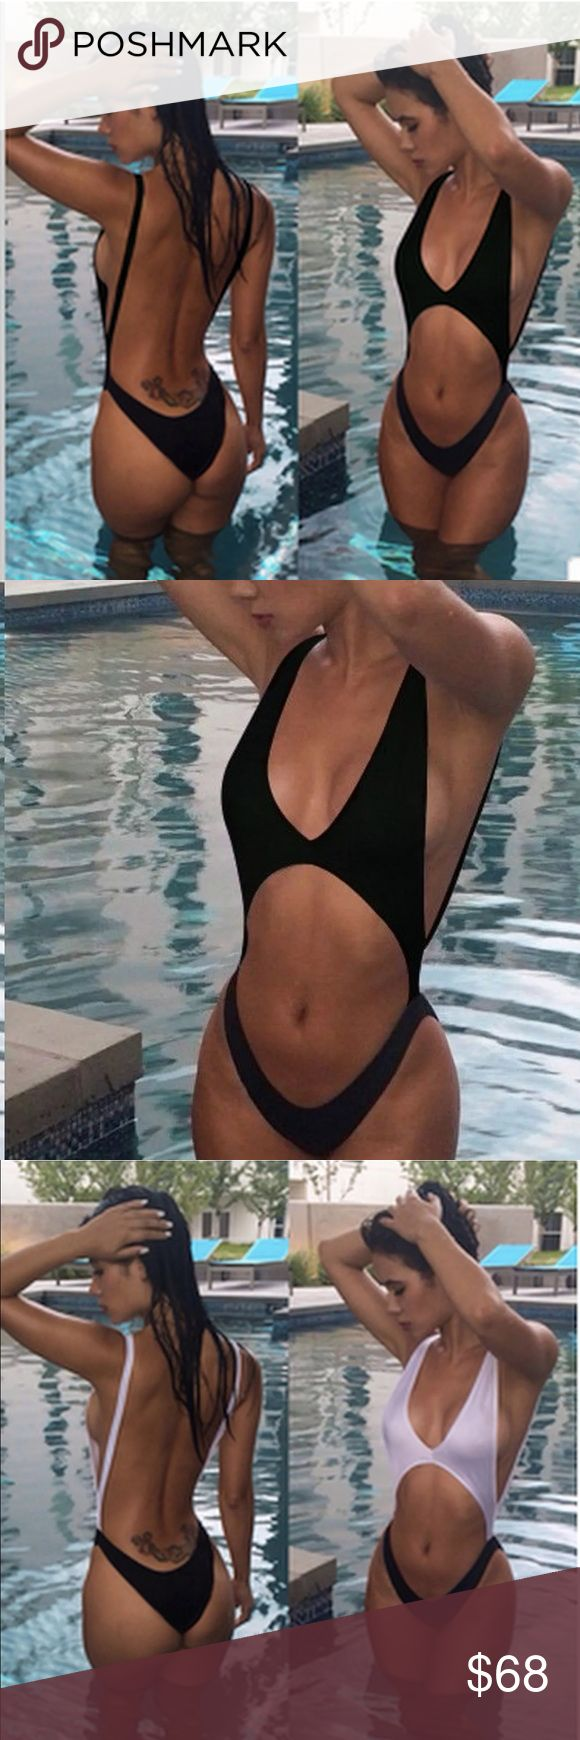 "• Just in! • Sexy Black Monokini • • Just in! • Sexy Black Monokini • The ultimate 2017 swim suit trend is available in black (see other listing for black + white). Sizes Small & Medium • Limited quantity • Excellent quality material (bikini is lightly padded so no ""see through"" issues! - Beware of others selling inferior quality! ) • Close up pics of actual suit Swim One Pieces"